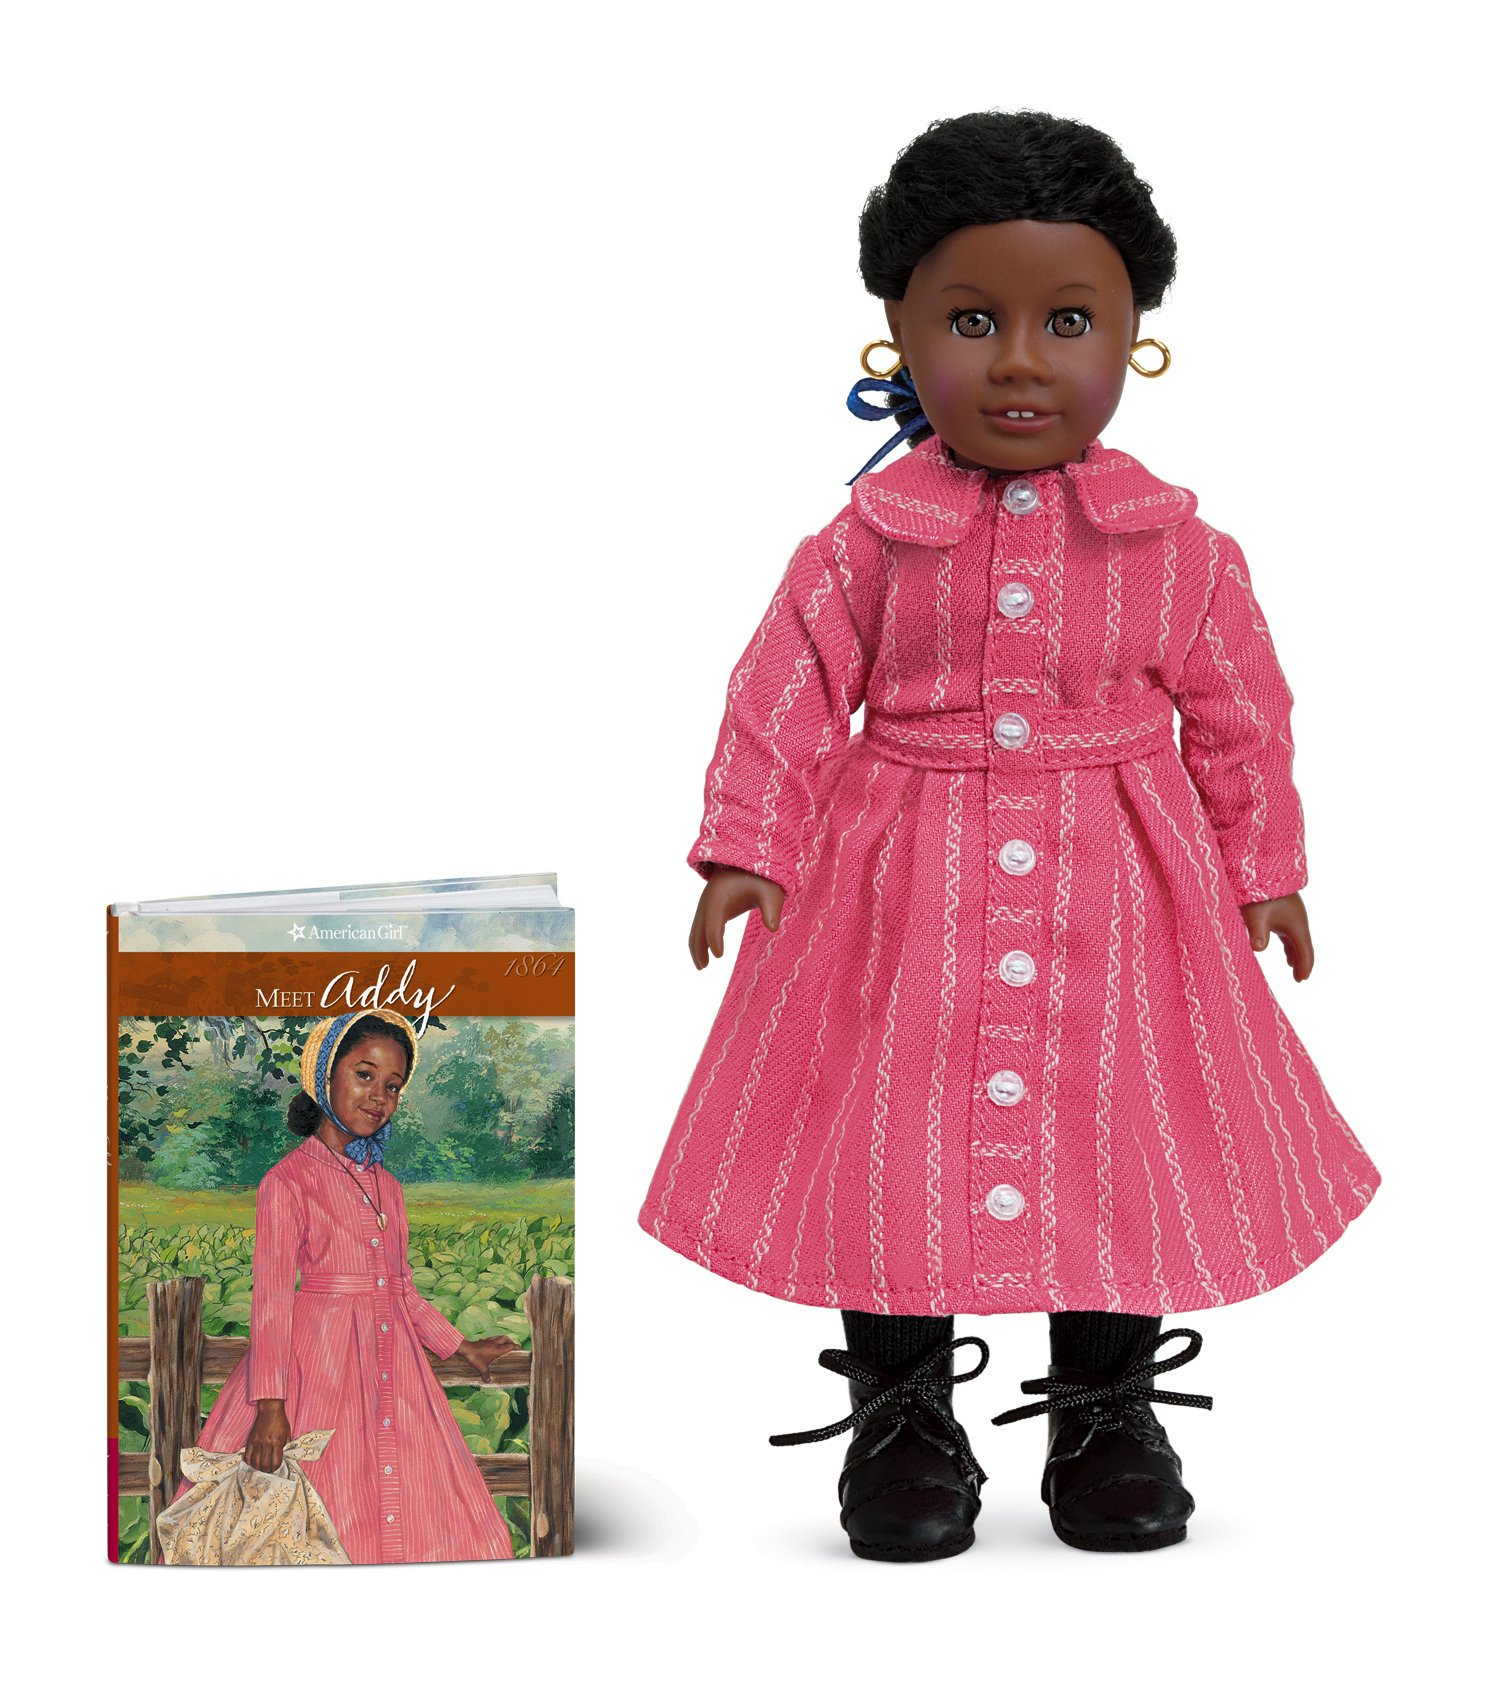 11 American Girls Dolls Outfits Ranked Because Seriously Marie